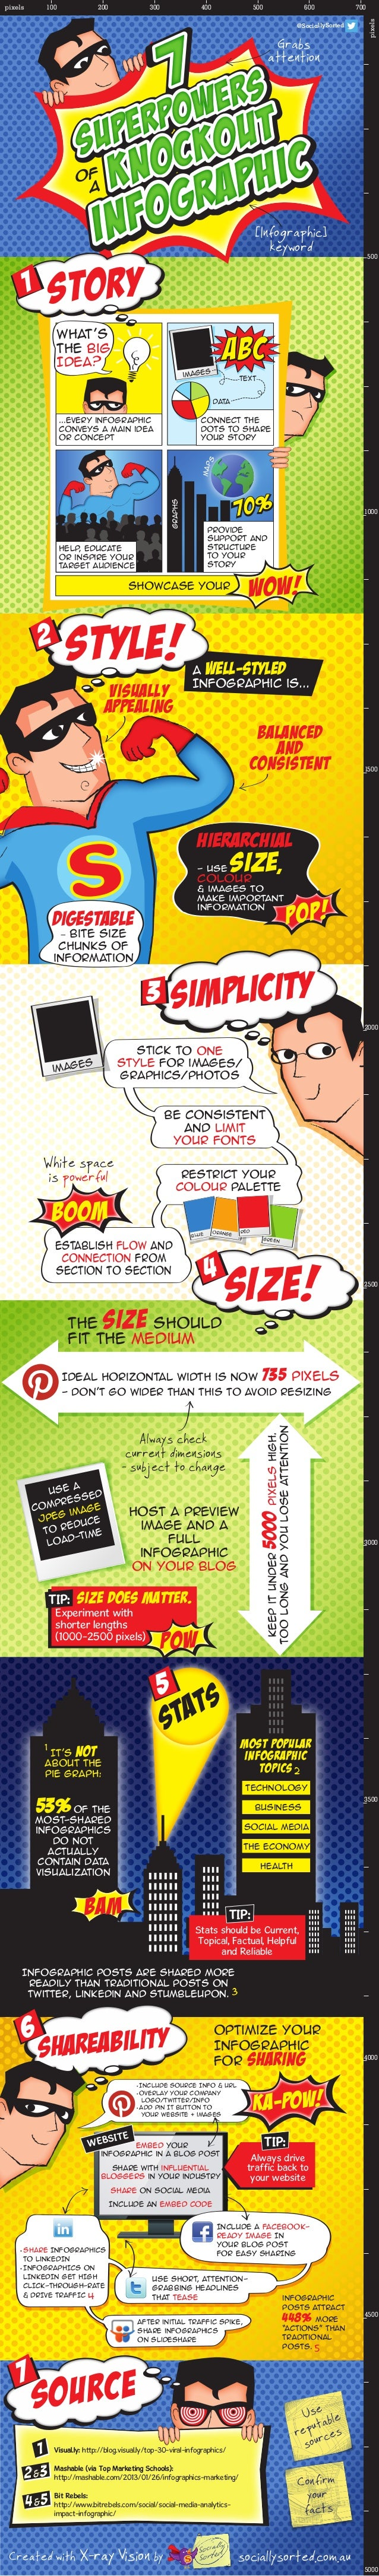 Grabs attention [Infographic] keyword @SociallySorted of a story ...Every infographic conveys a main idea or concept What'...